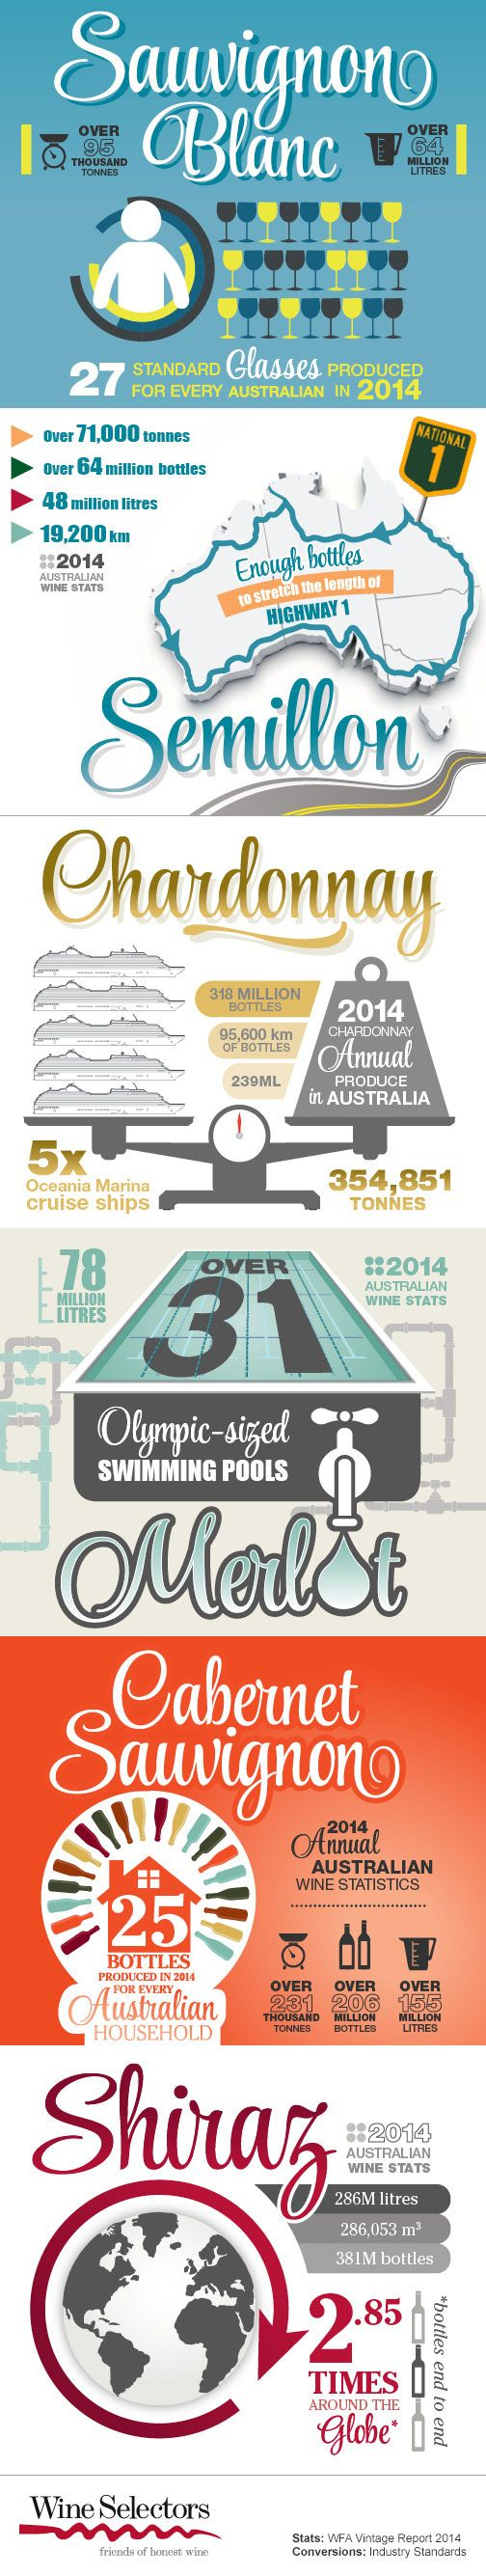 Ever Wondered How Much Merlot Can Fit In An Olympic Sized Swimming Pool?  Learn This